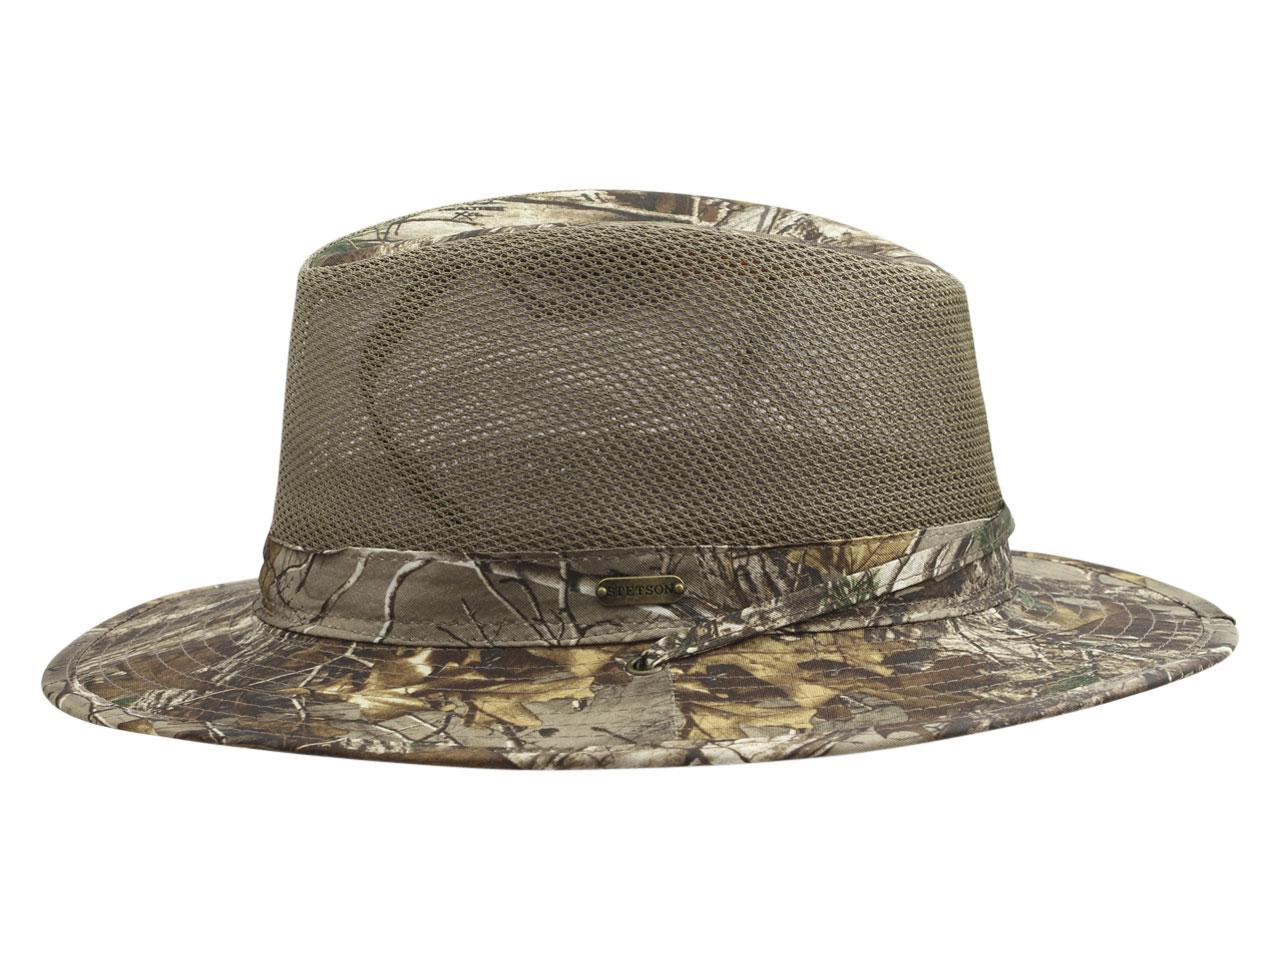 77d4330c6fb Stetson Men s Realtree Xtra No Fly Zone Insect Repellent Safari Hat